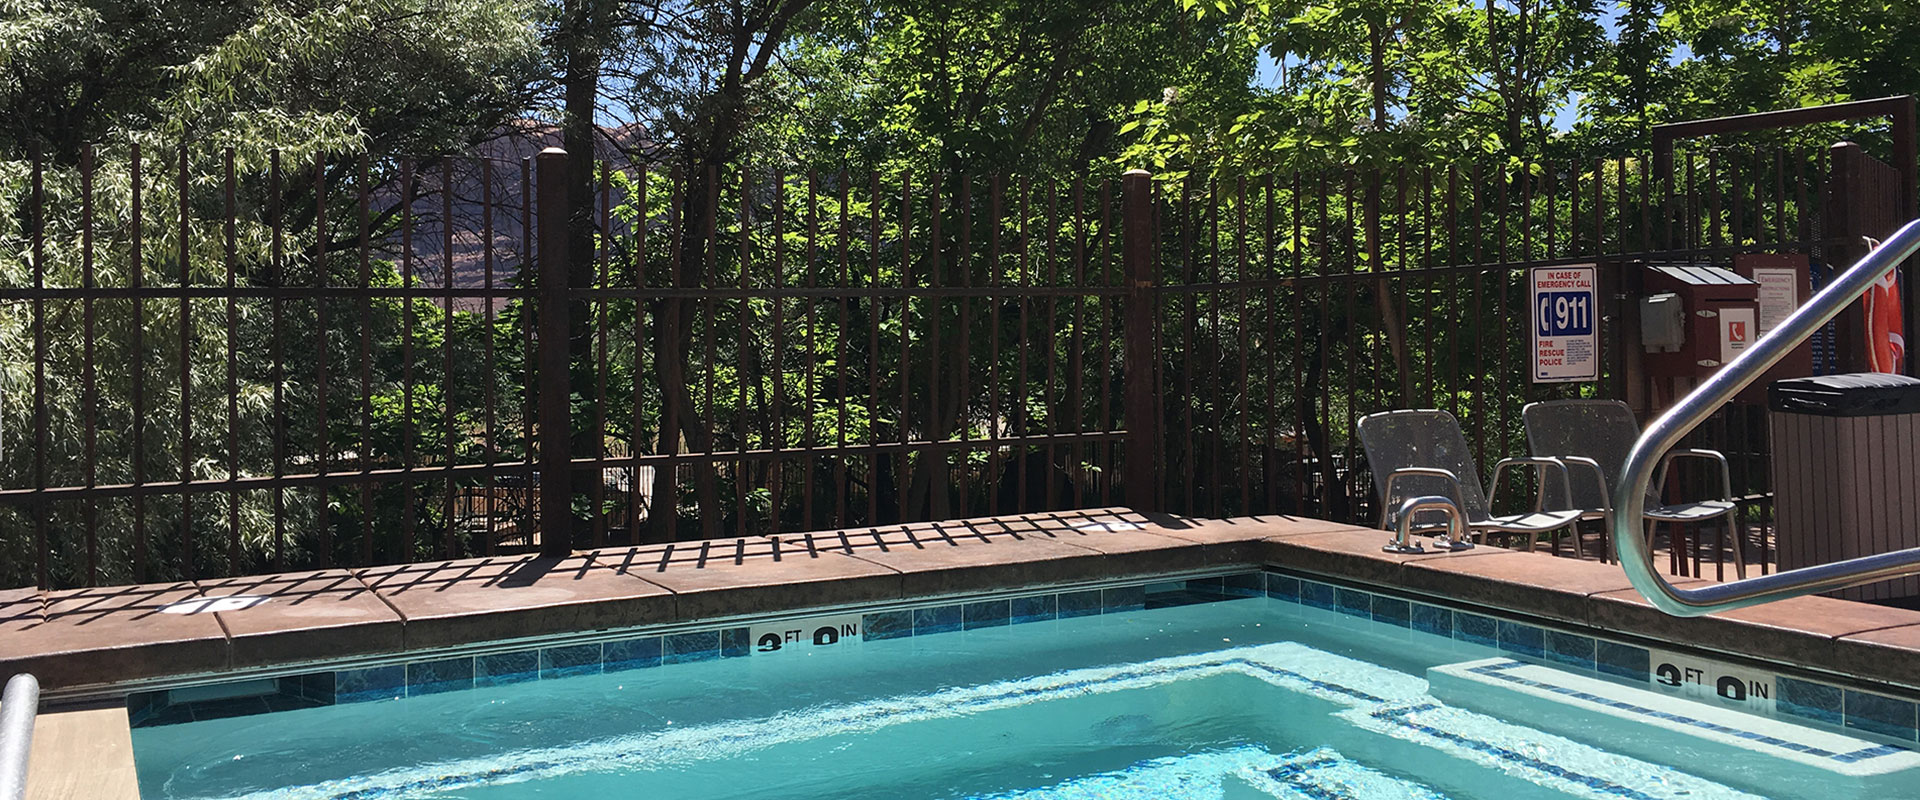 A man-made pond with paved coral pink brick, flows into a natural stream running through the green private parkspace of Moab Springs Ranch.